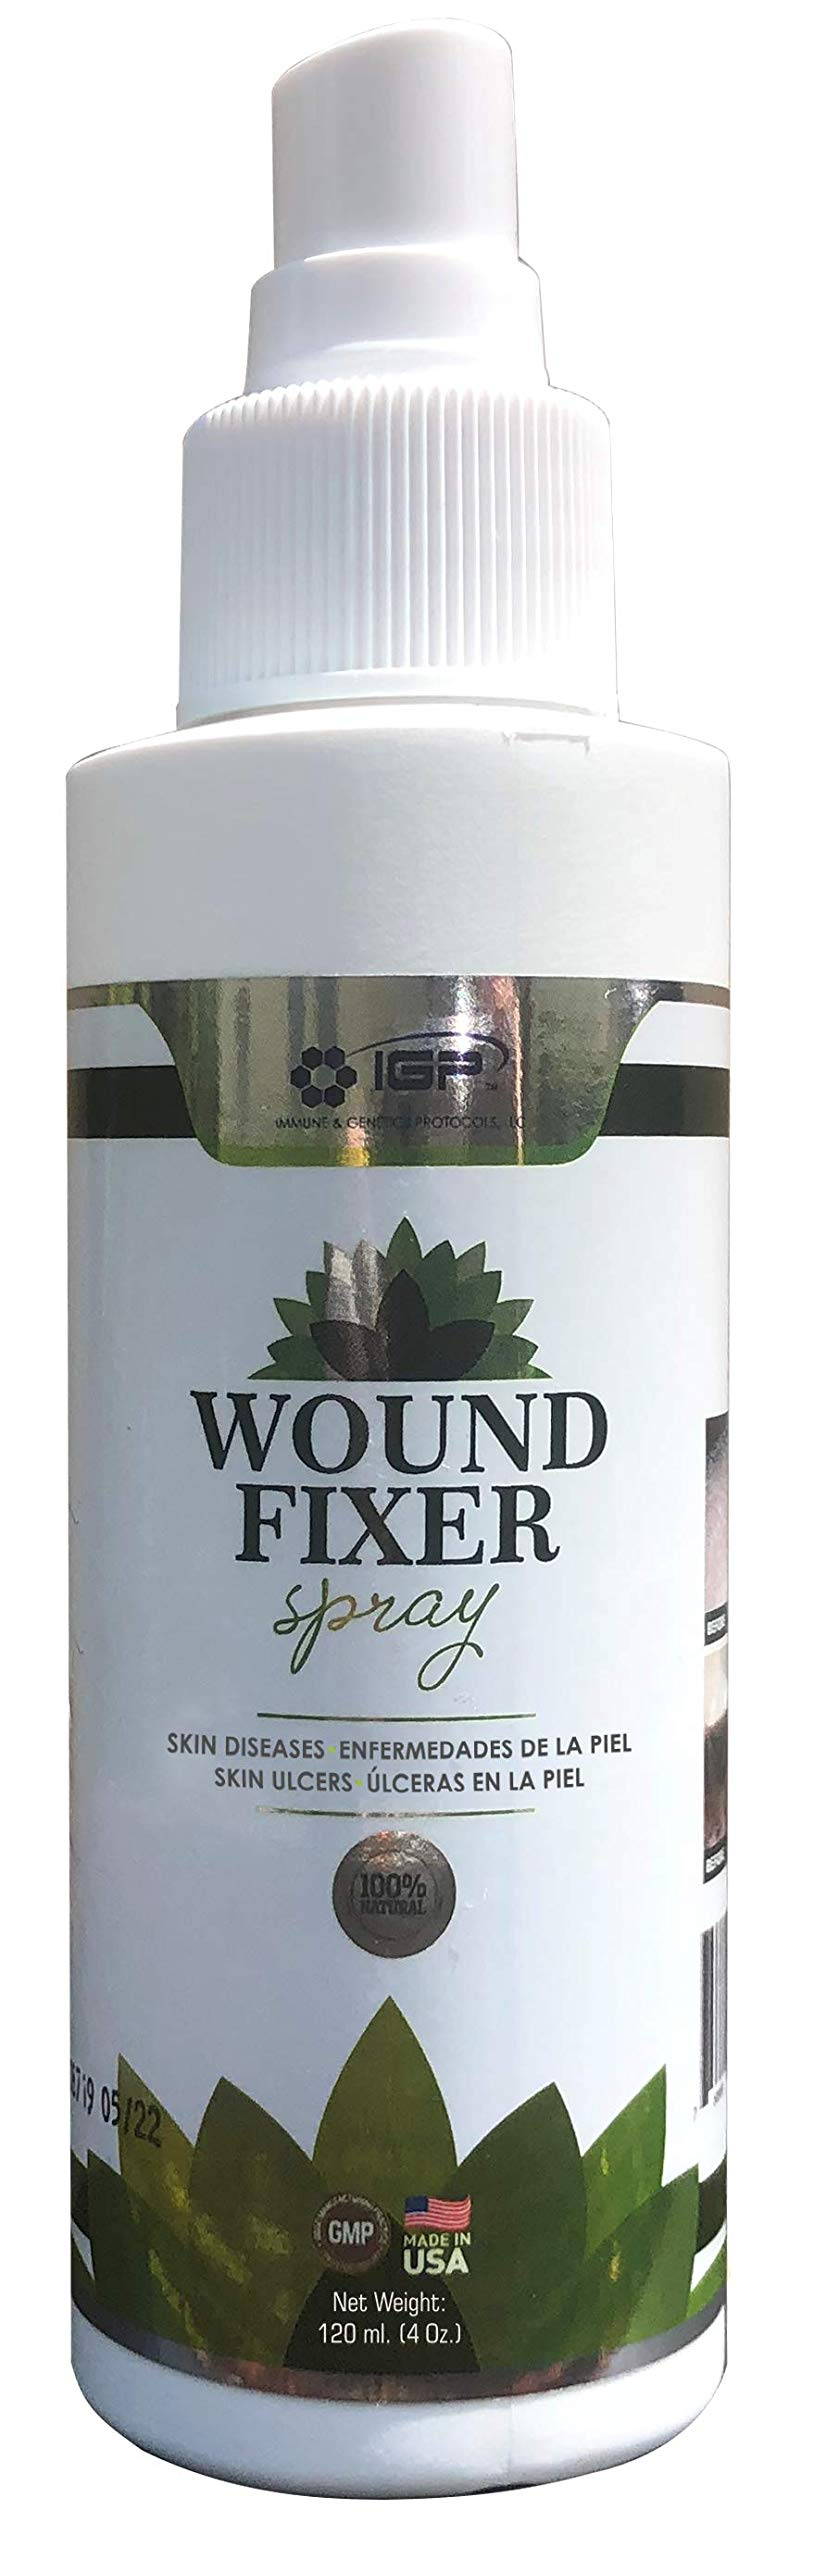 Wound Fixer. Skin Diseases, Skin Ulcers. Wounds can heal. 4oz by Wound Fixer